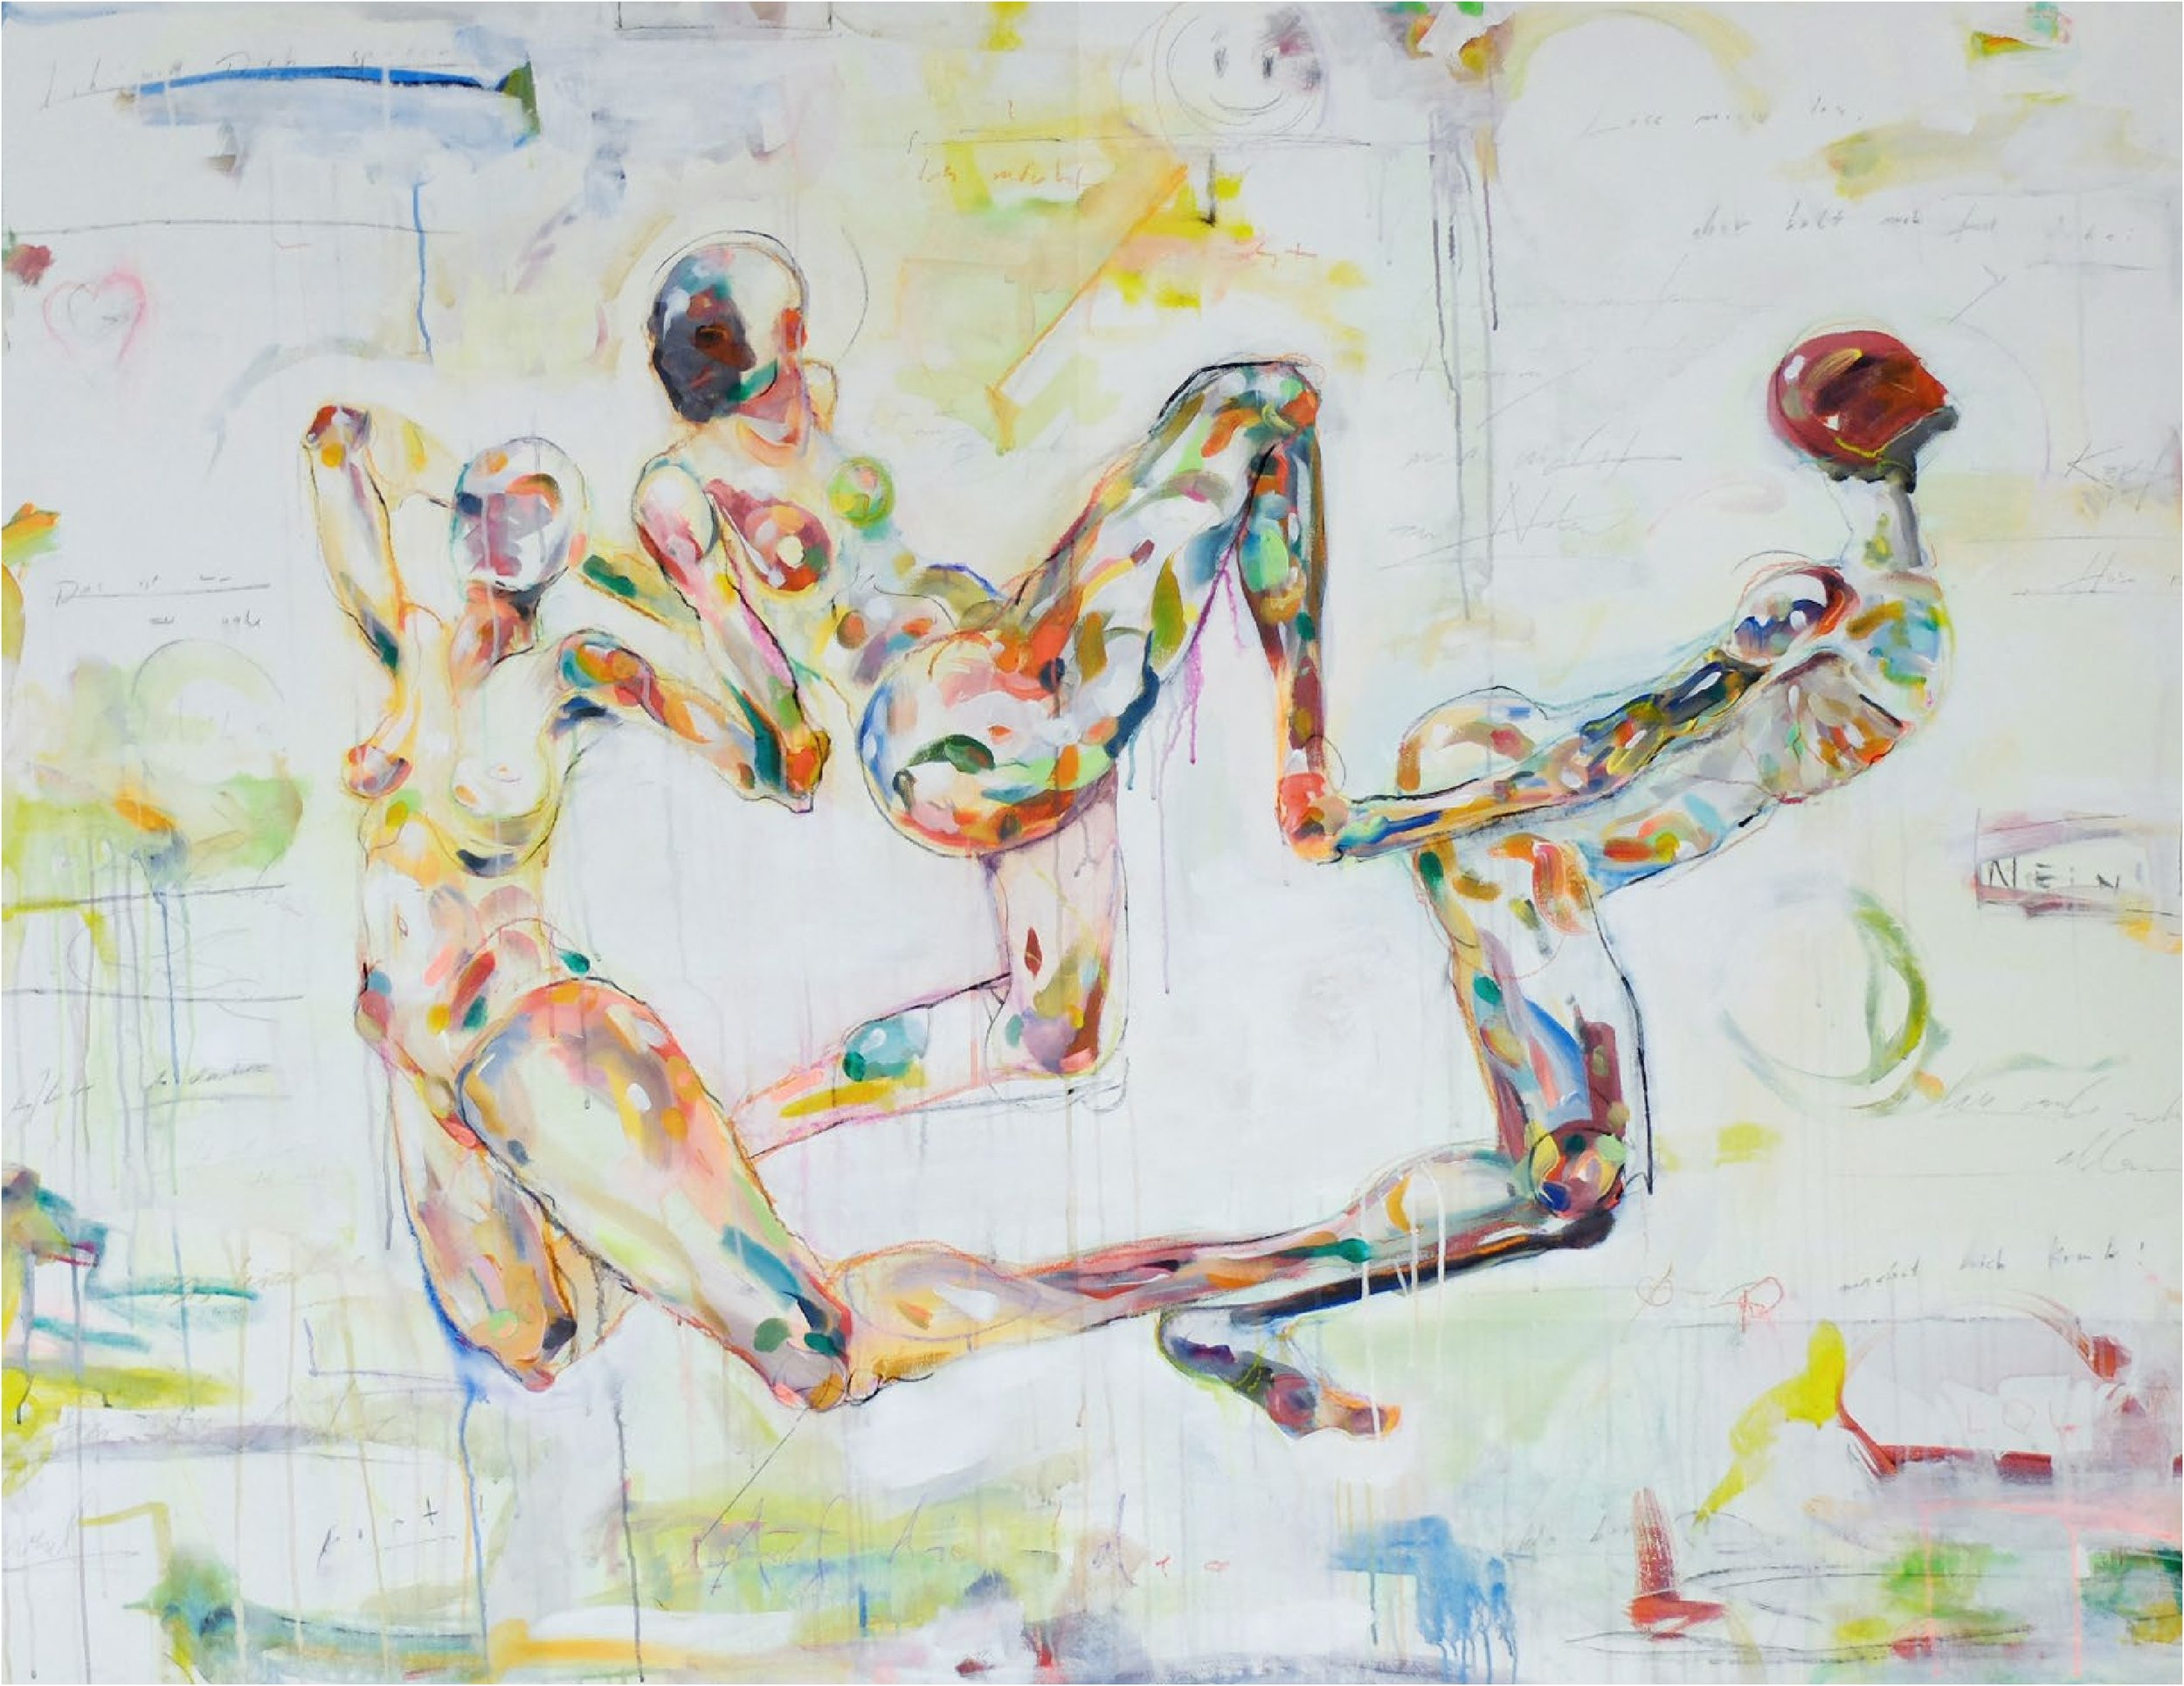 Dissociate   Philipp Pieroth  Acrylic, aquarelle and charcoal on canvas  1400 x 1800 x 40 mm  Price On Request